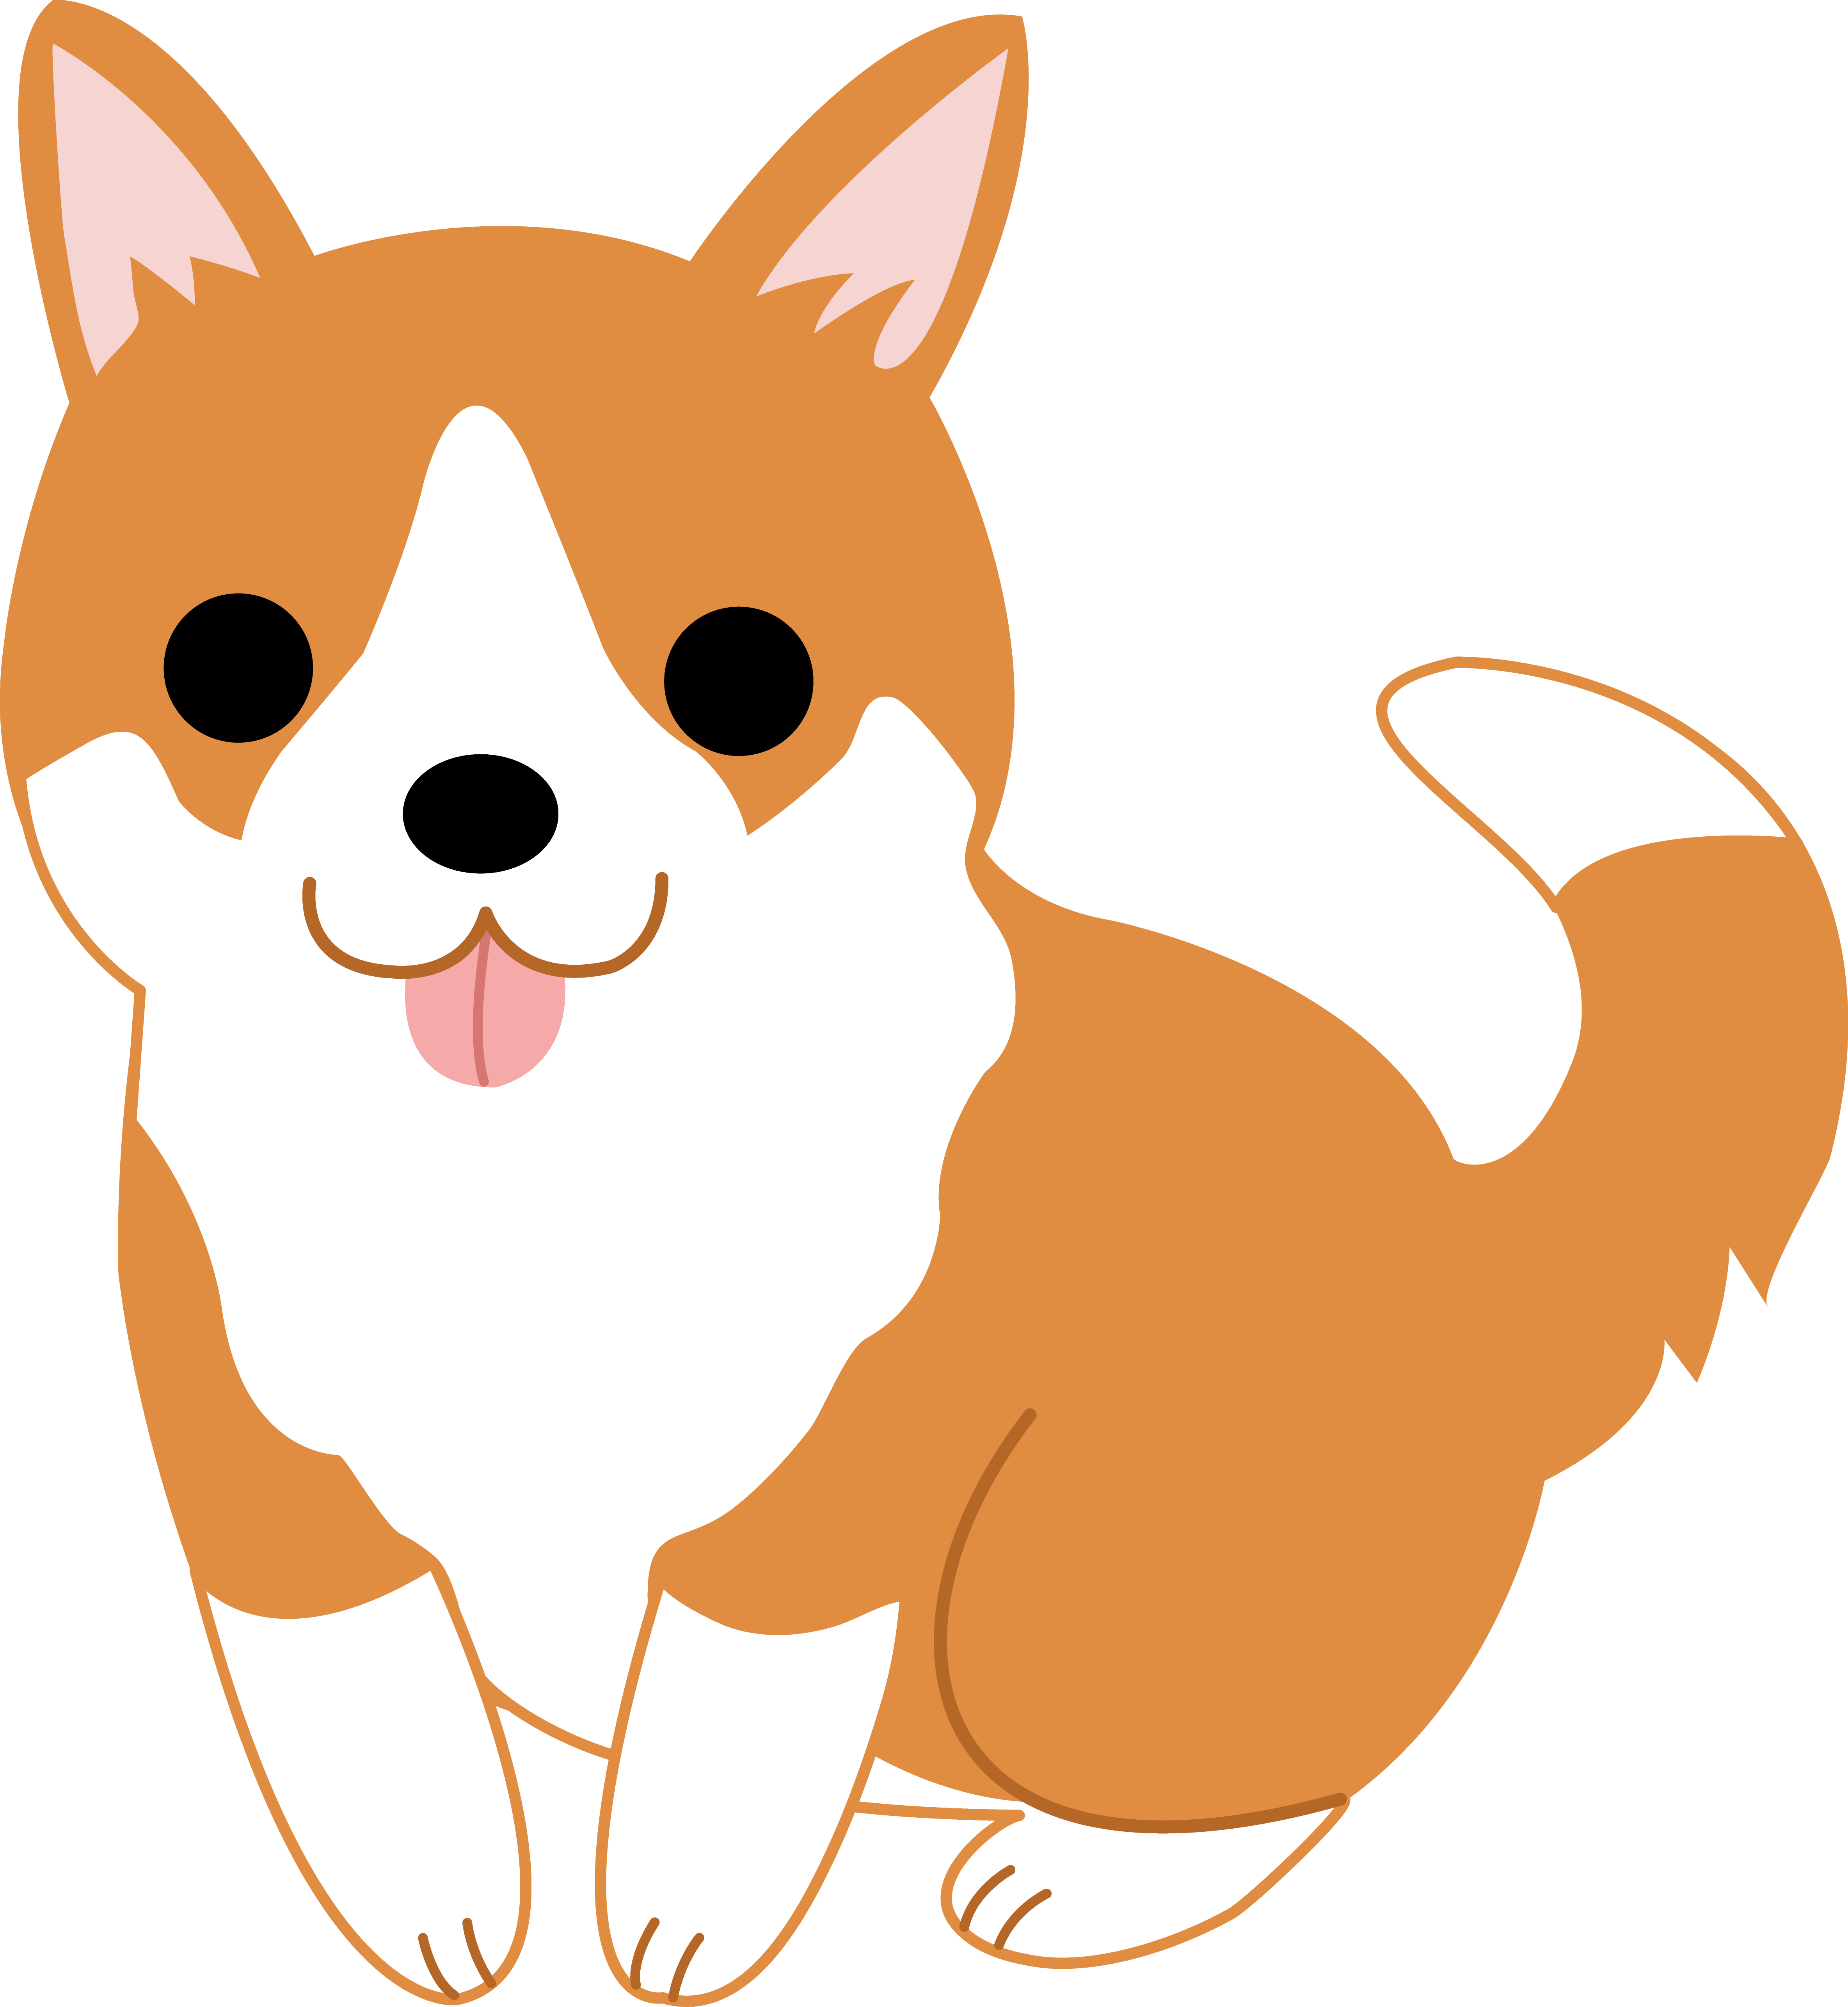 puppy clipart clipart panda free clipart images rh clipartpanda com free puppy clipart images free clipart puppy paw prints